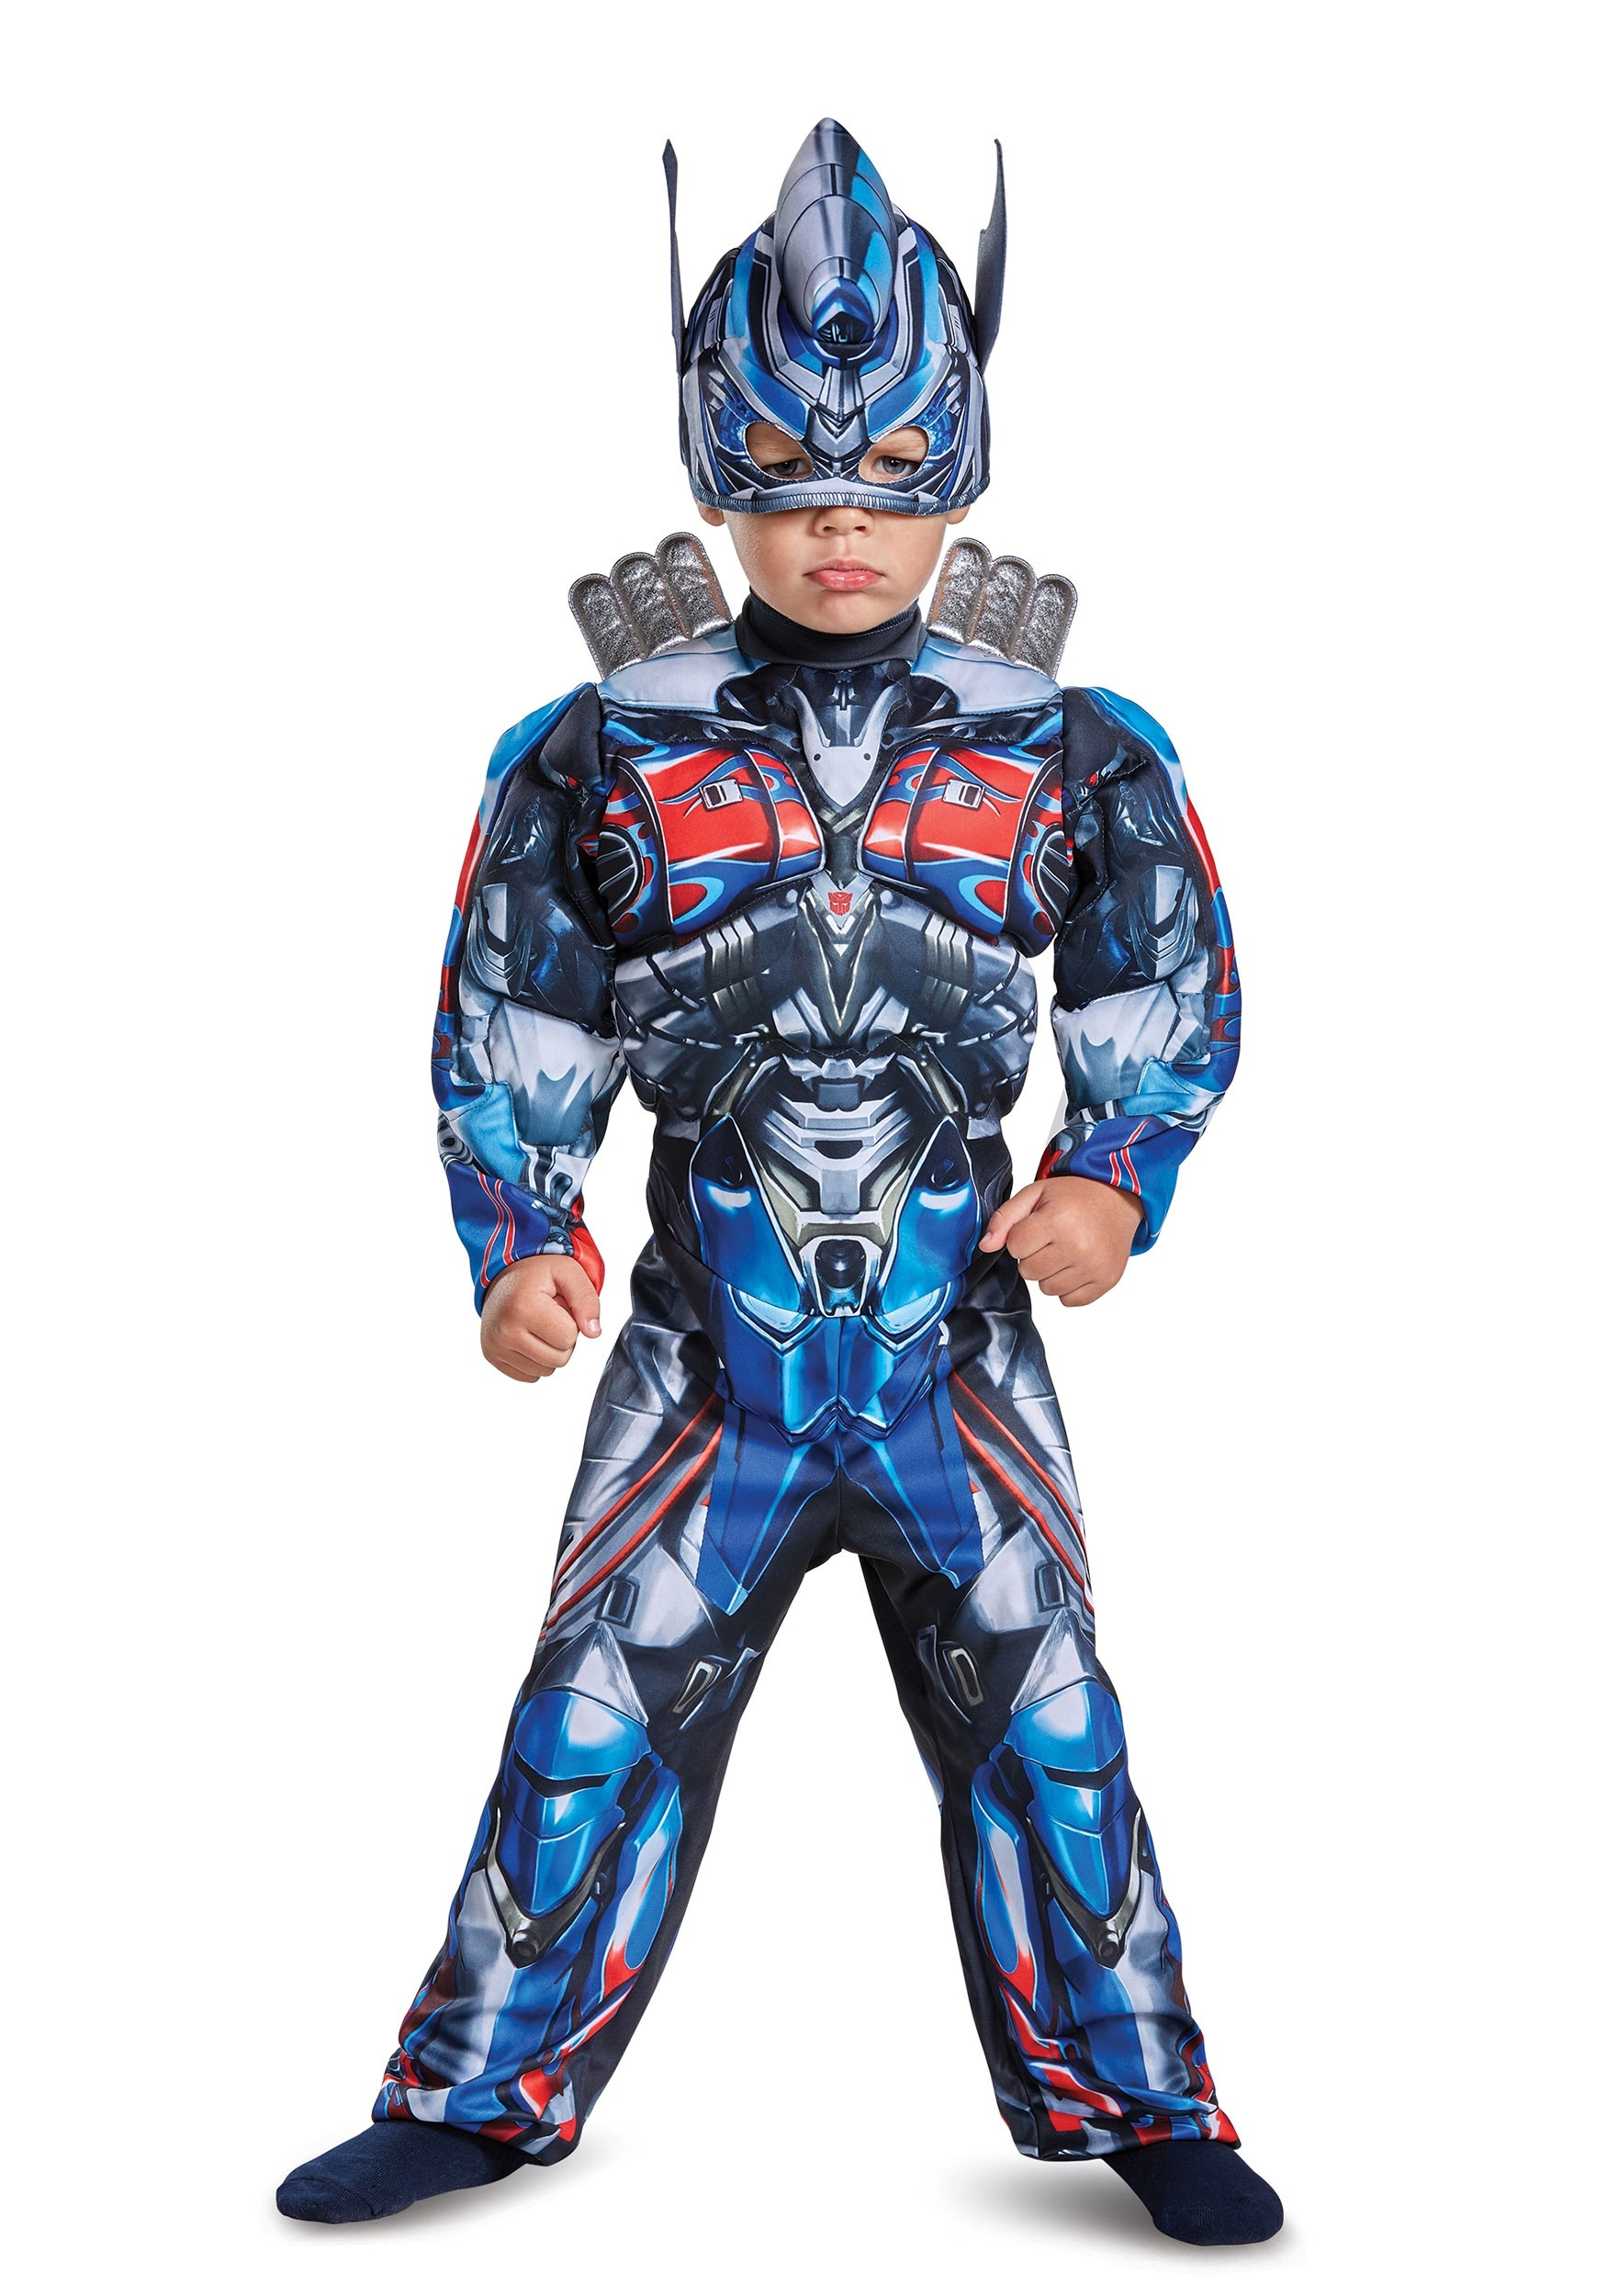 Optimus Prime Toddler Muscle Costume DI22323